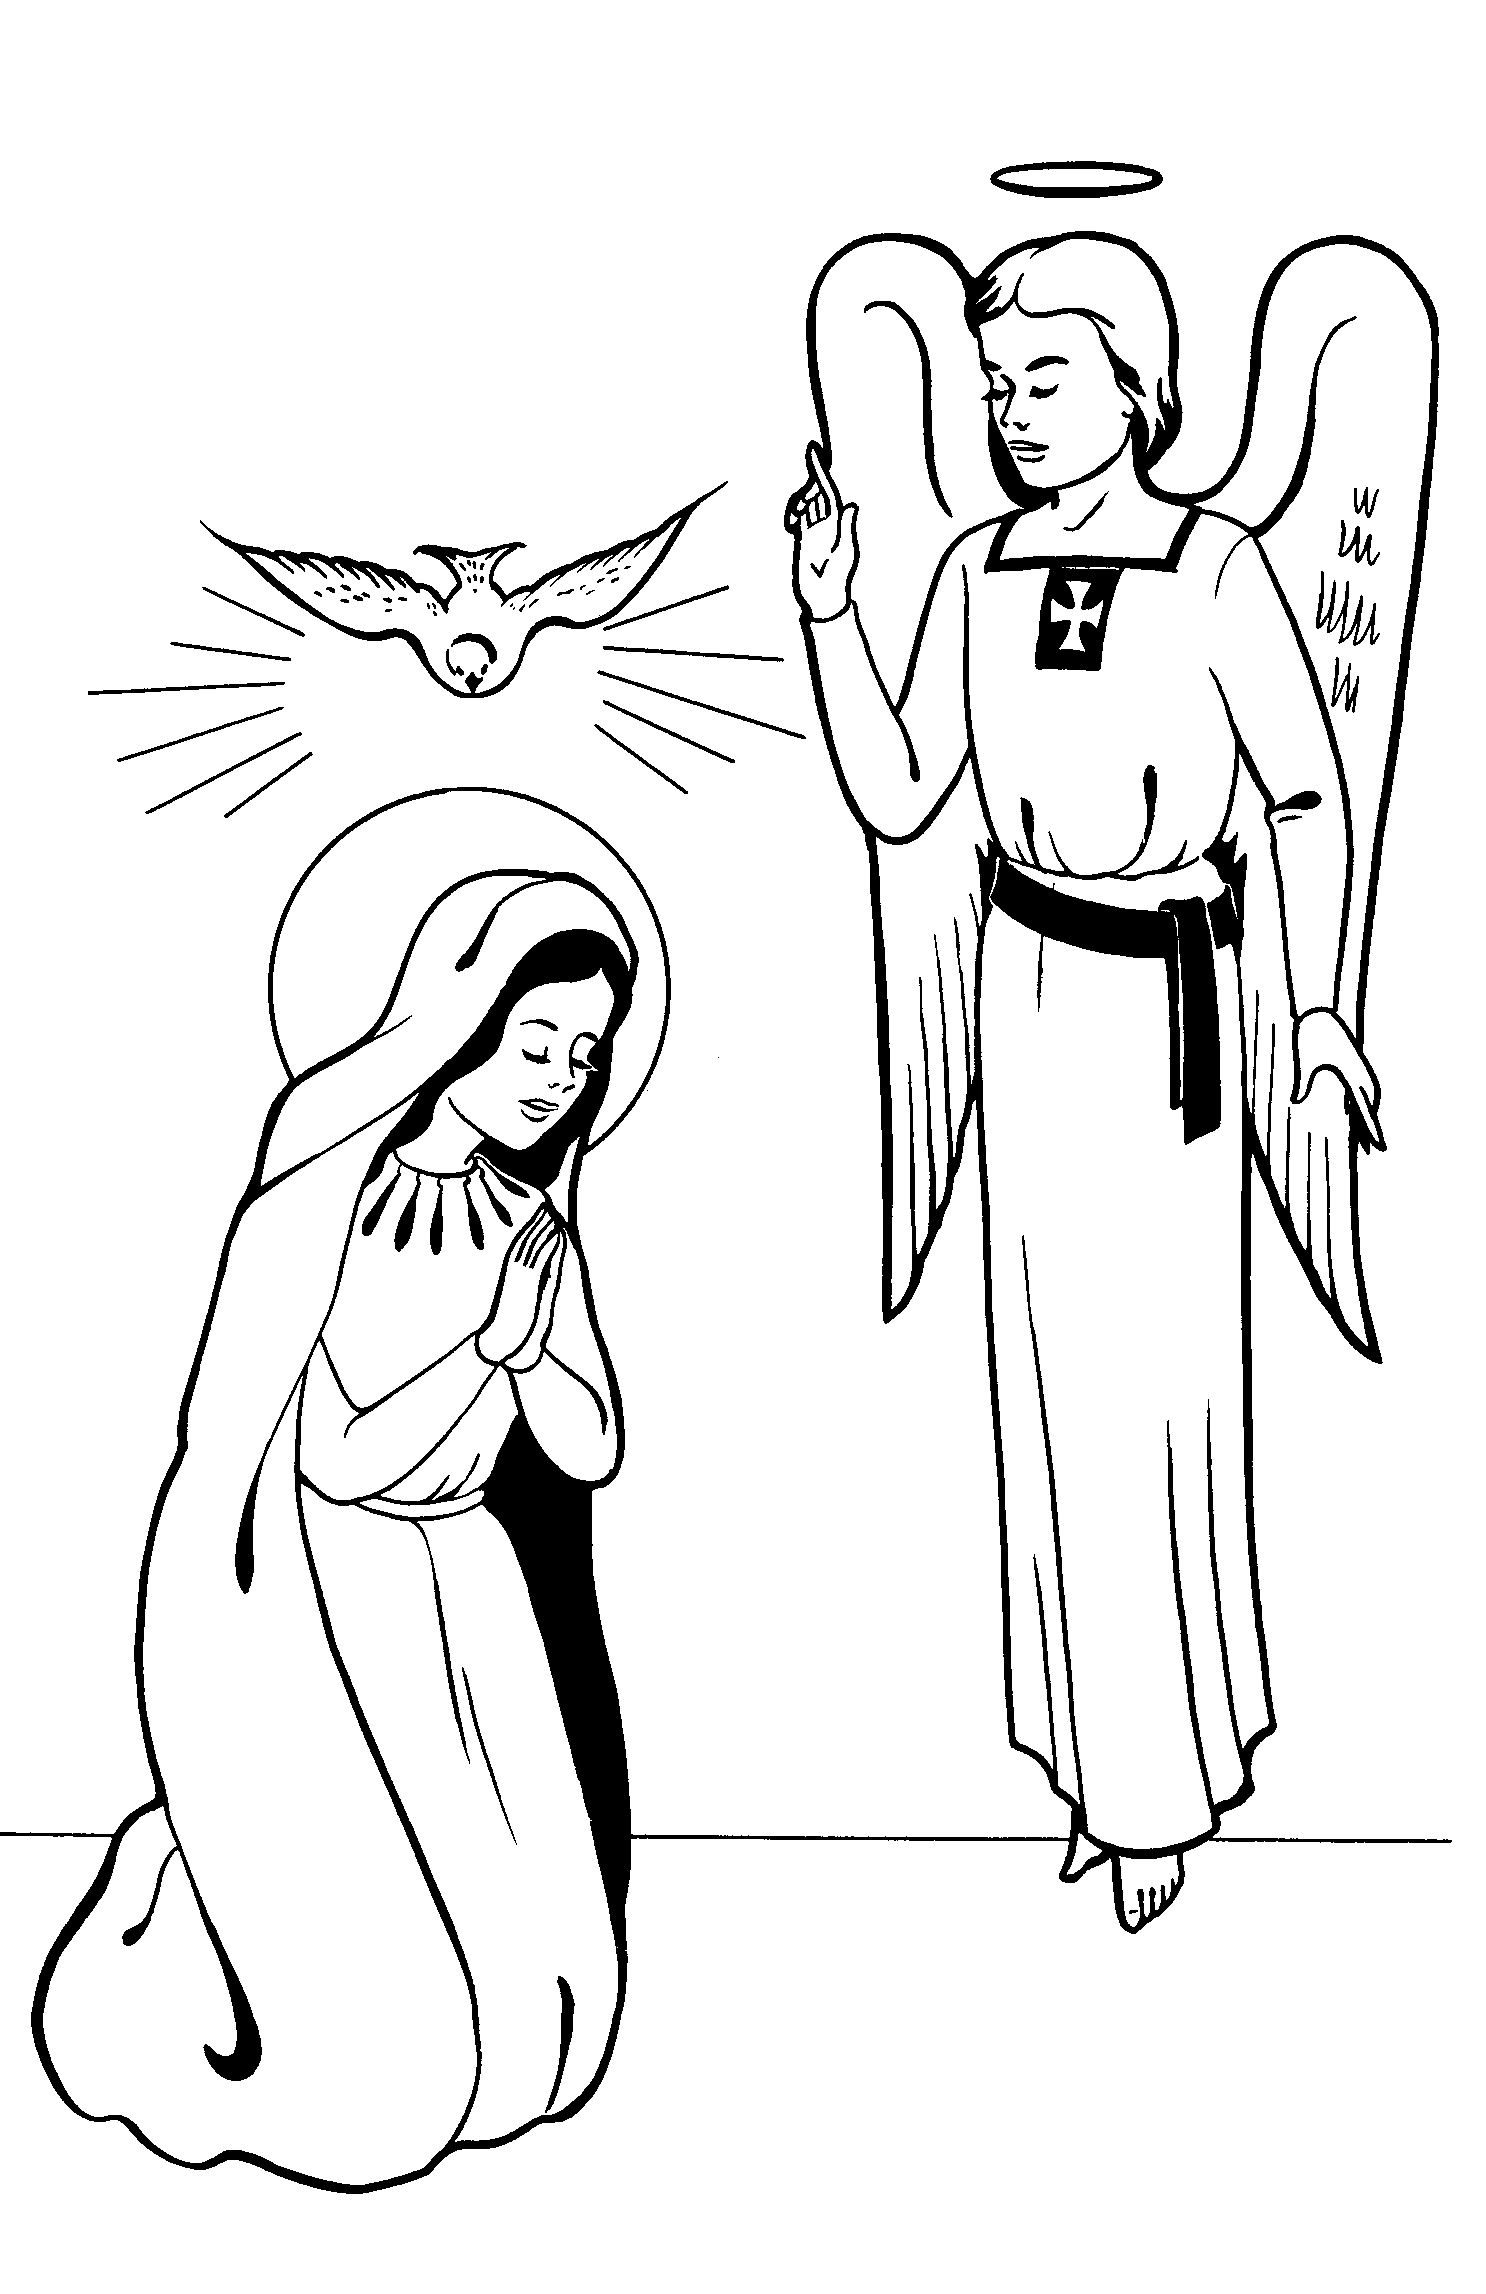 religion by sister mary francine s s c illustrated by jeanne dekan